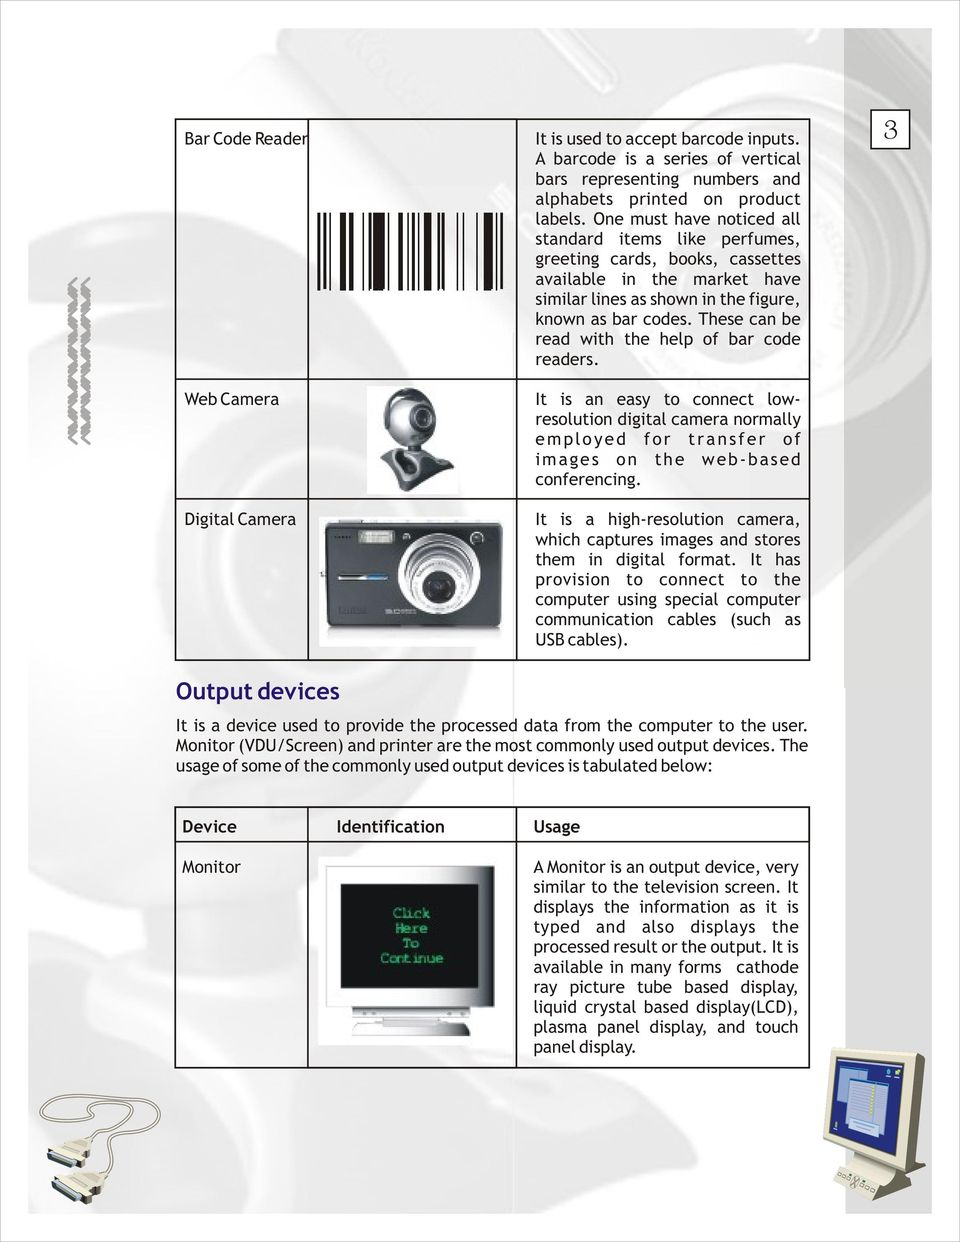 These can be read with the help of bar code readers. It is an easy to connect lowresolution digital camera normally employed for transfer of images on the web-based conferencing.